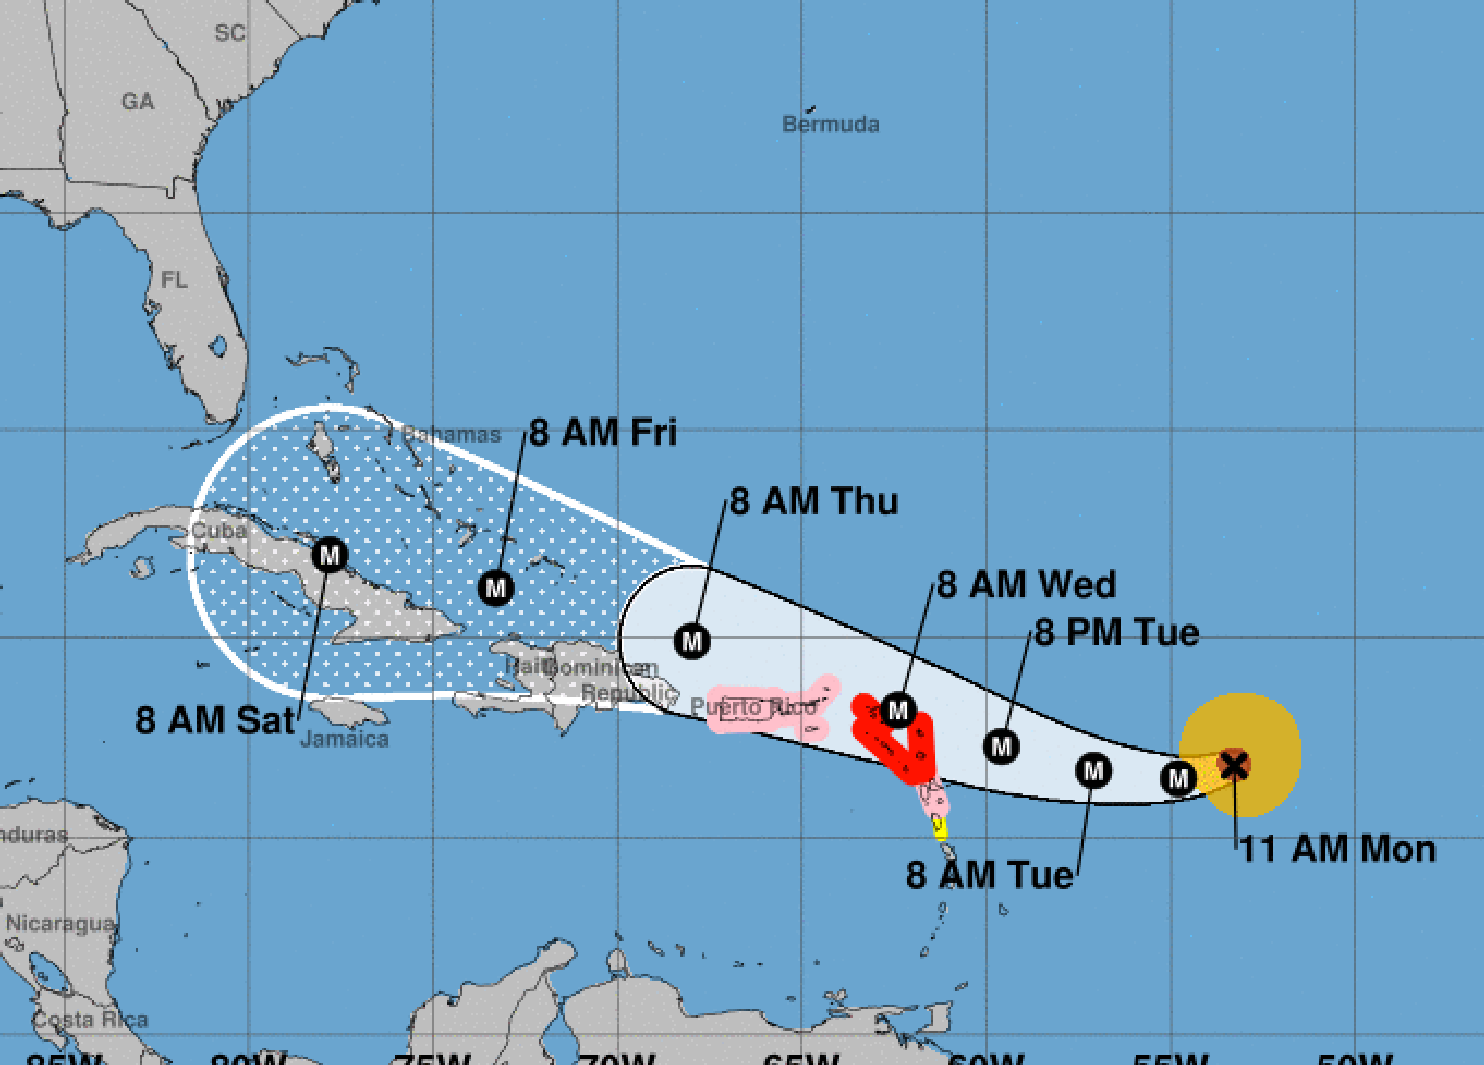 Irma Intensifies To An Extremely Dangerous Category 5 Hurricane On Its Track Toward The U S National Hurricane Center Atlantic Hurricane Storm Center